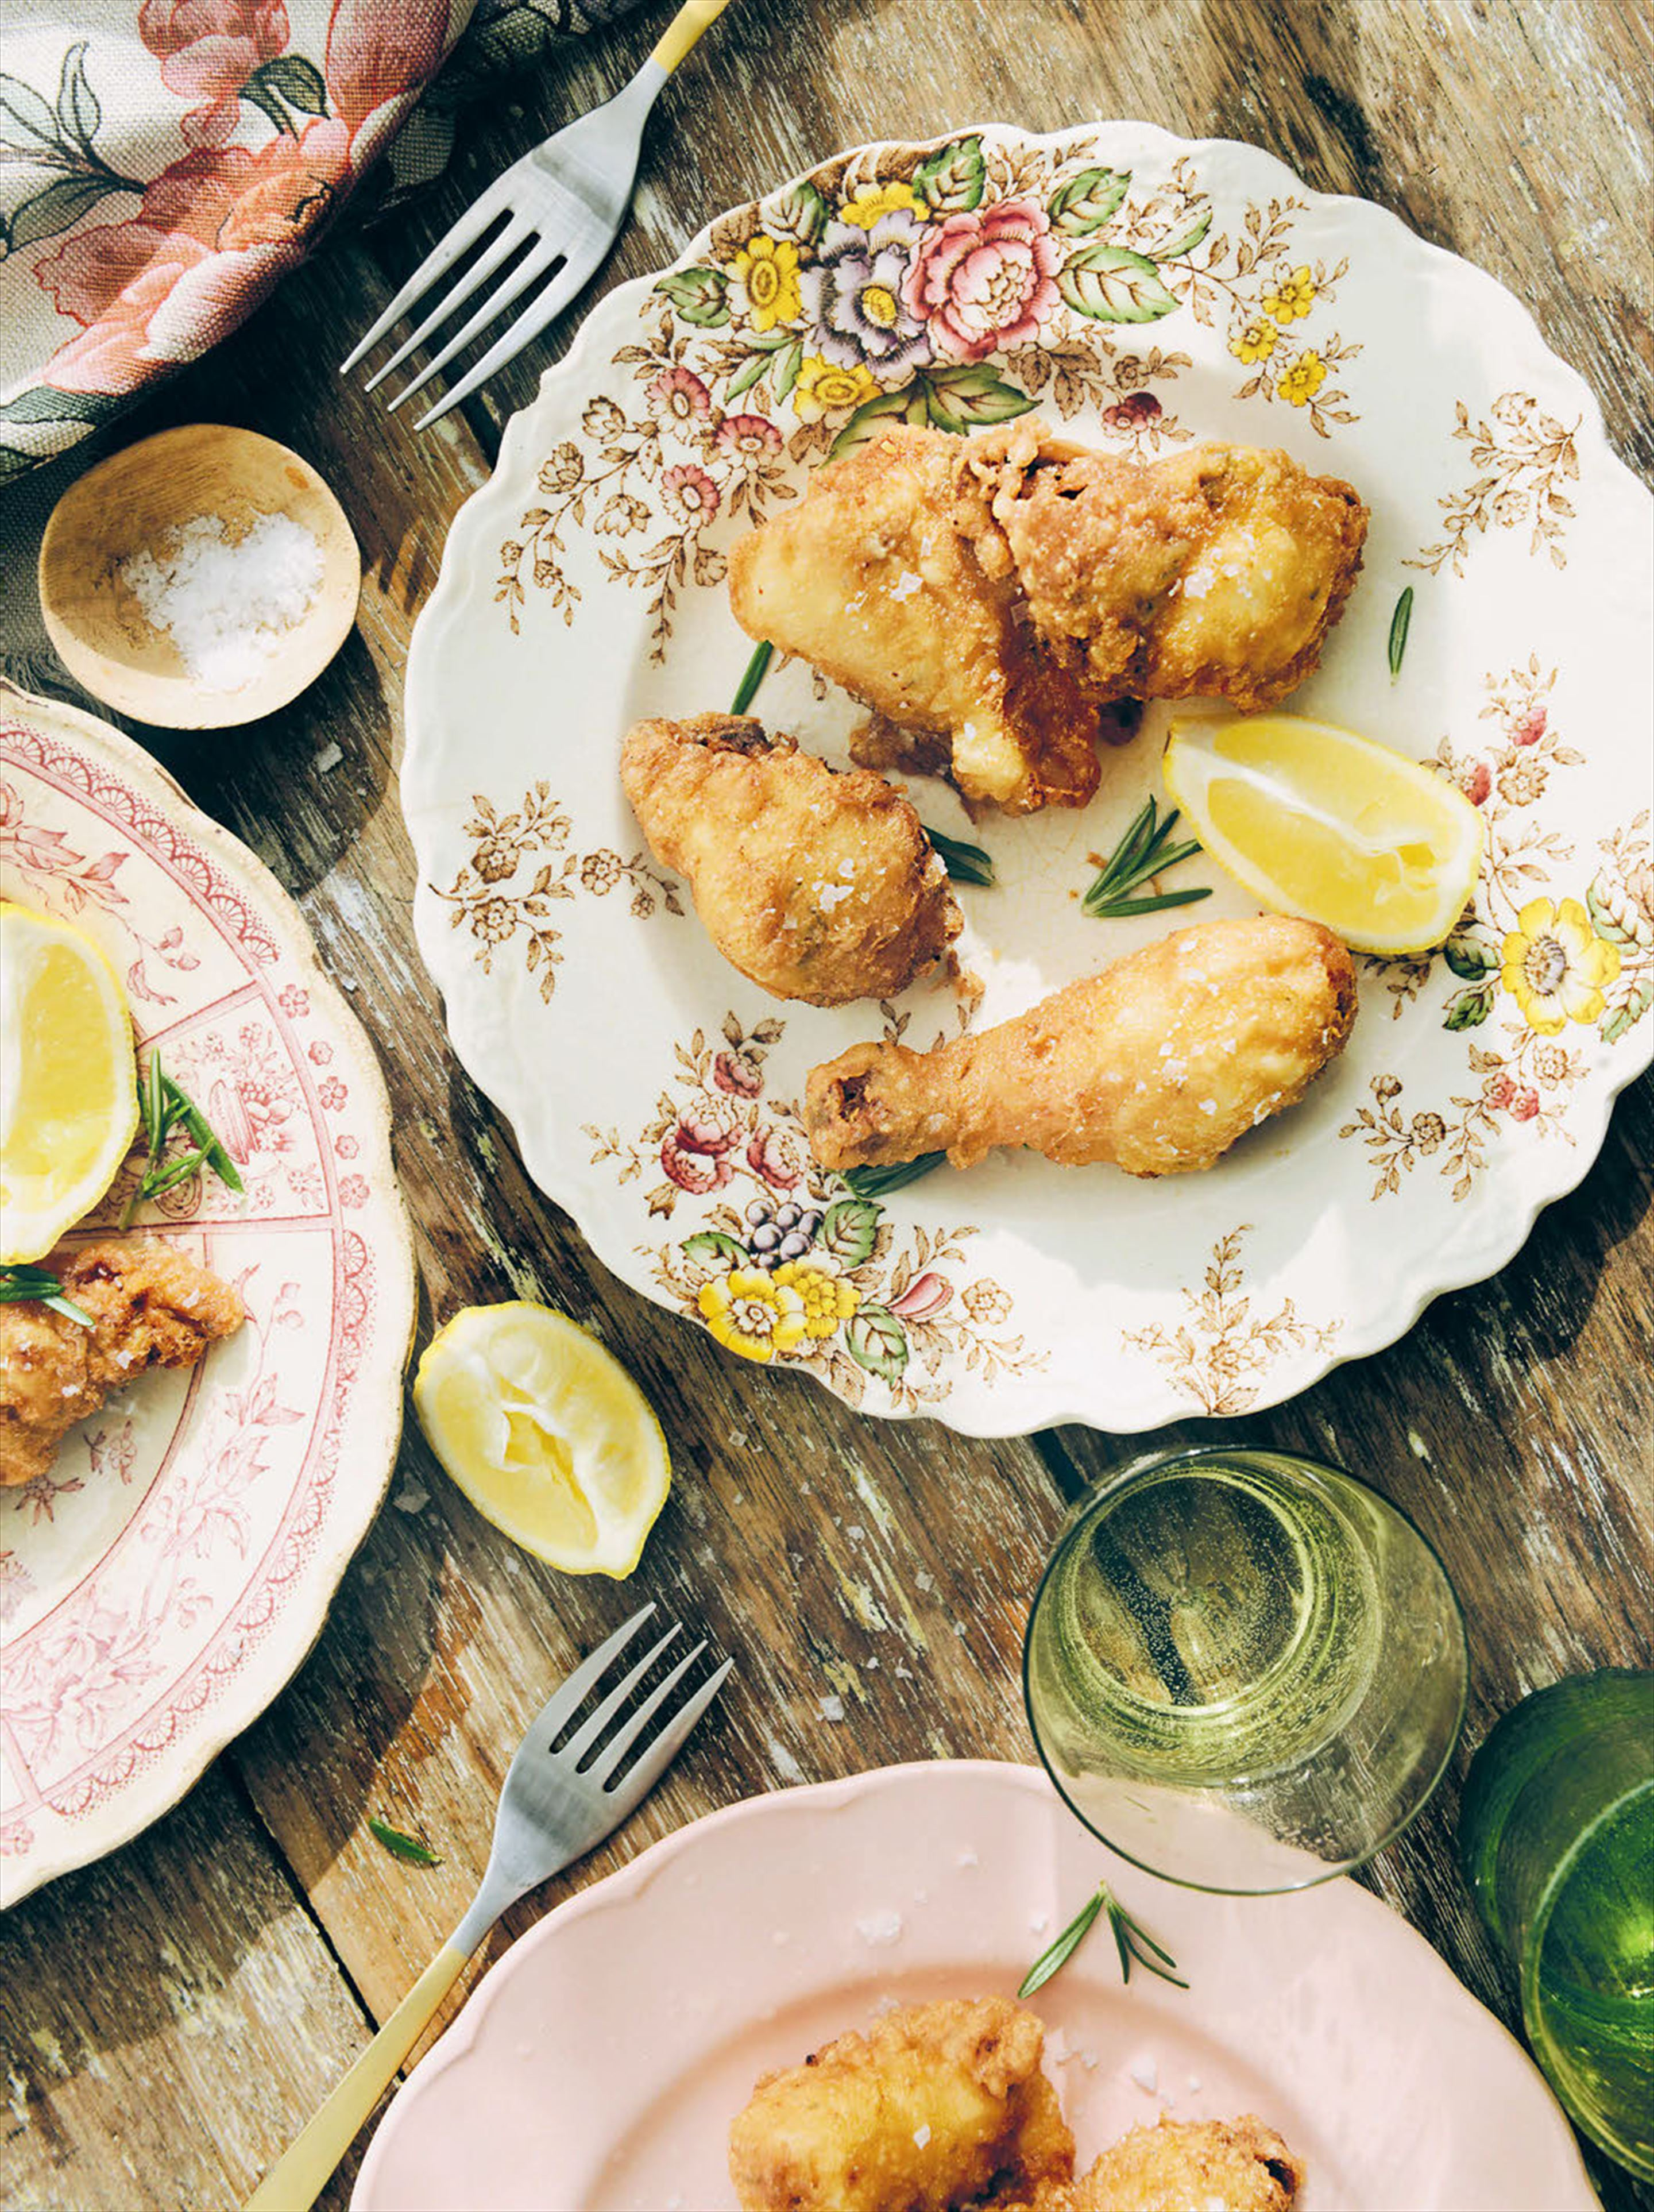 Florentine fried chicken